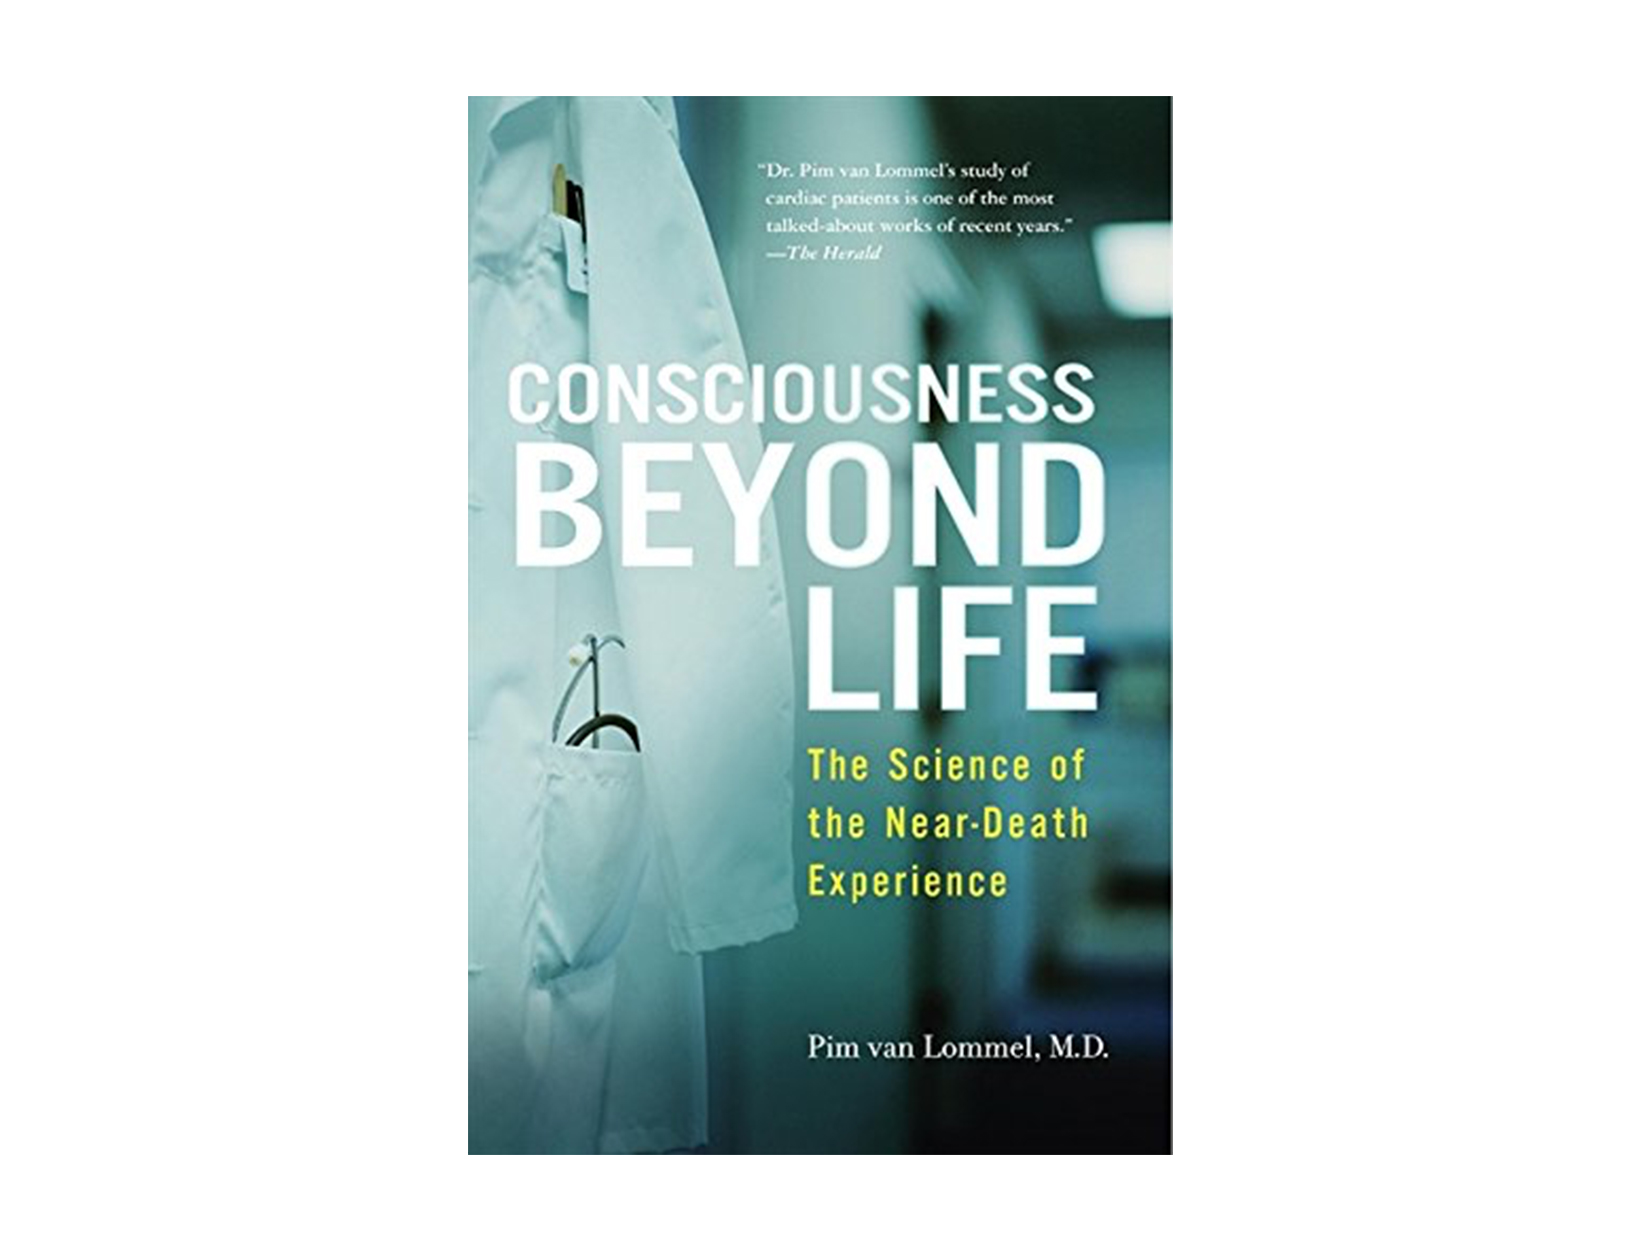 Consciousness Beyond Life: The Science of the Near-Death Experience by Pim van Lommel, M.D.